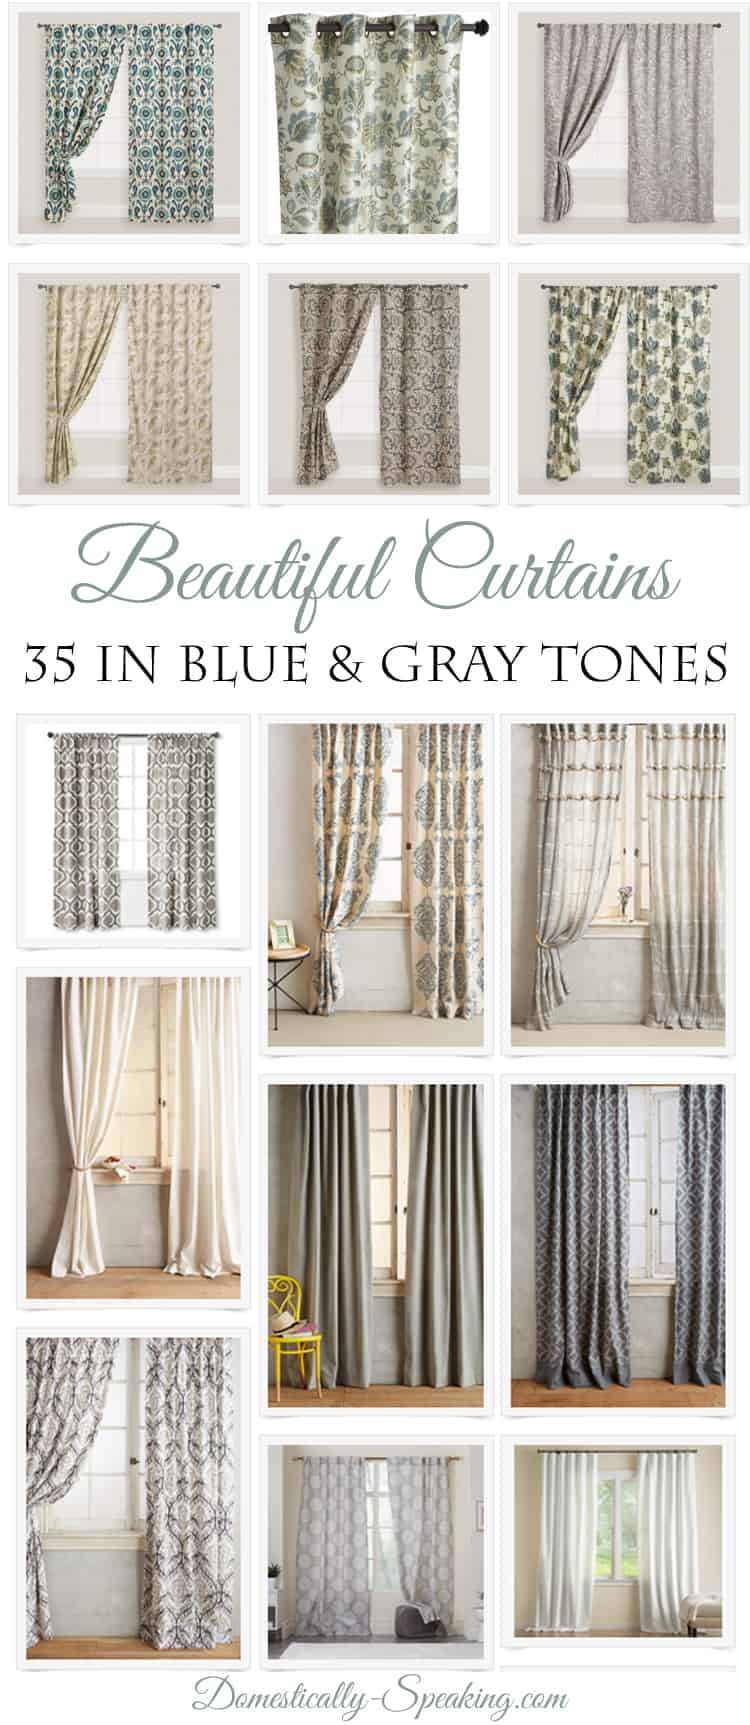 35 Beautiful Curtains - Domestically Speaking